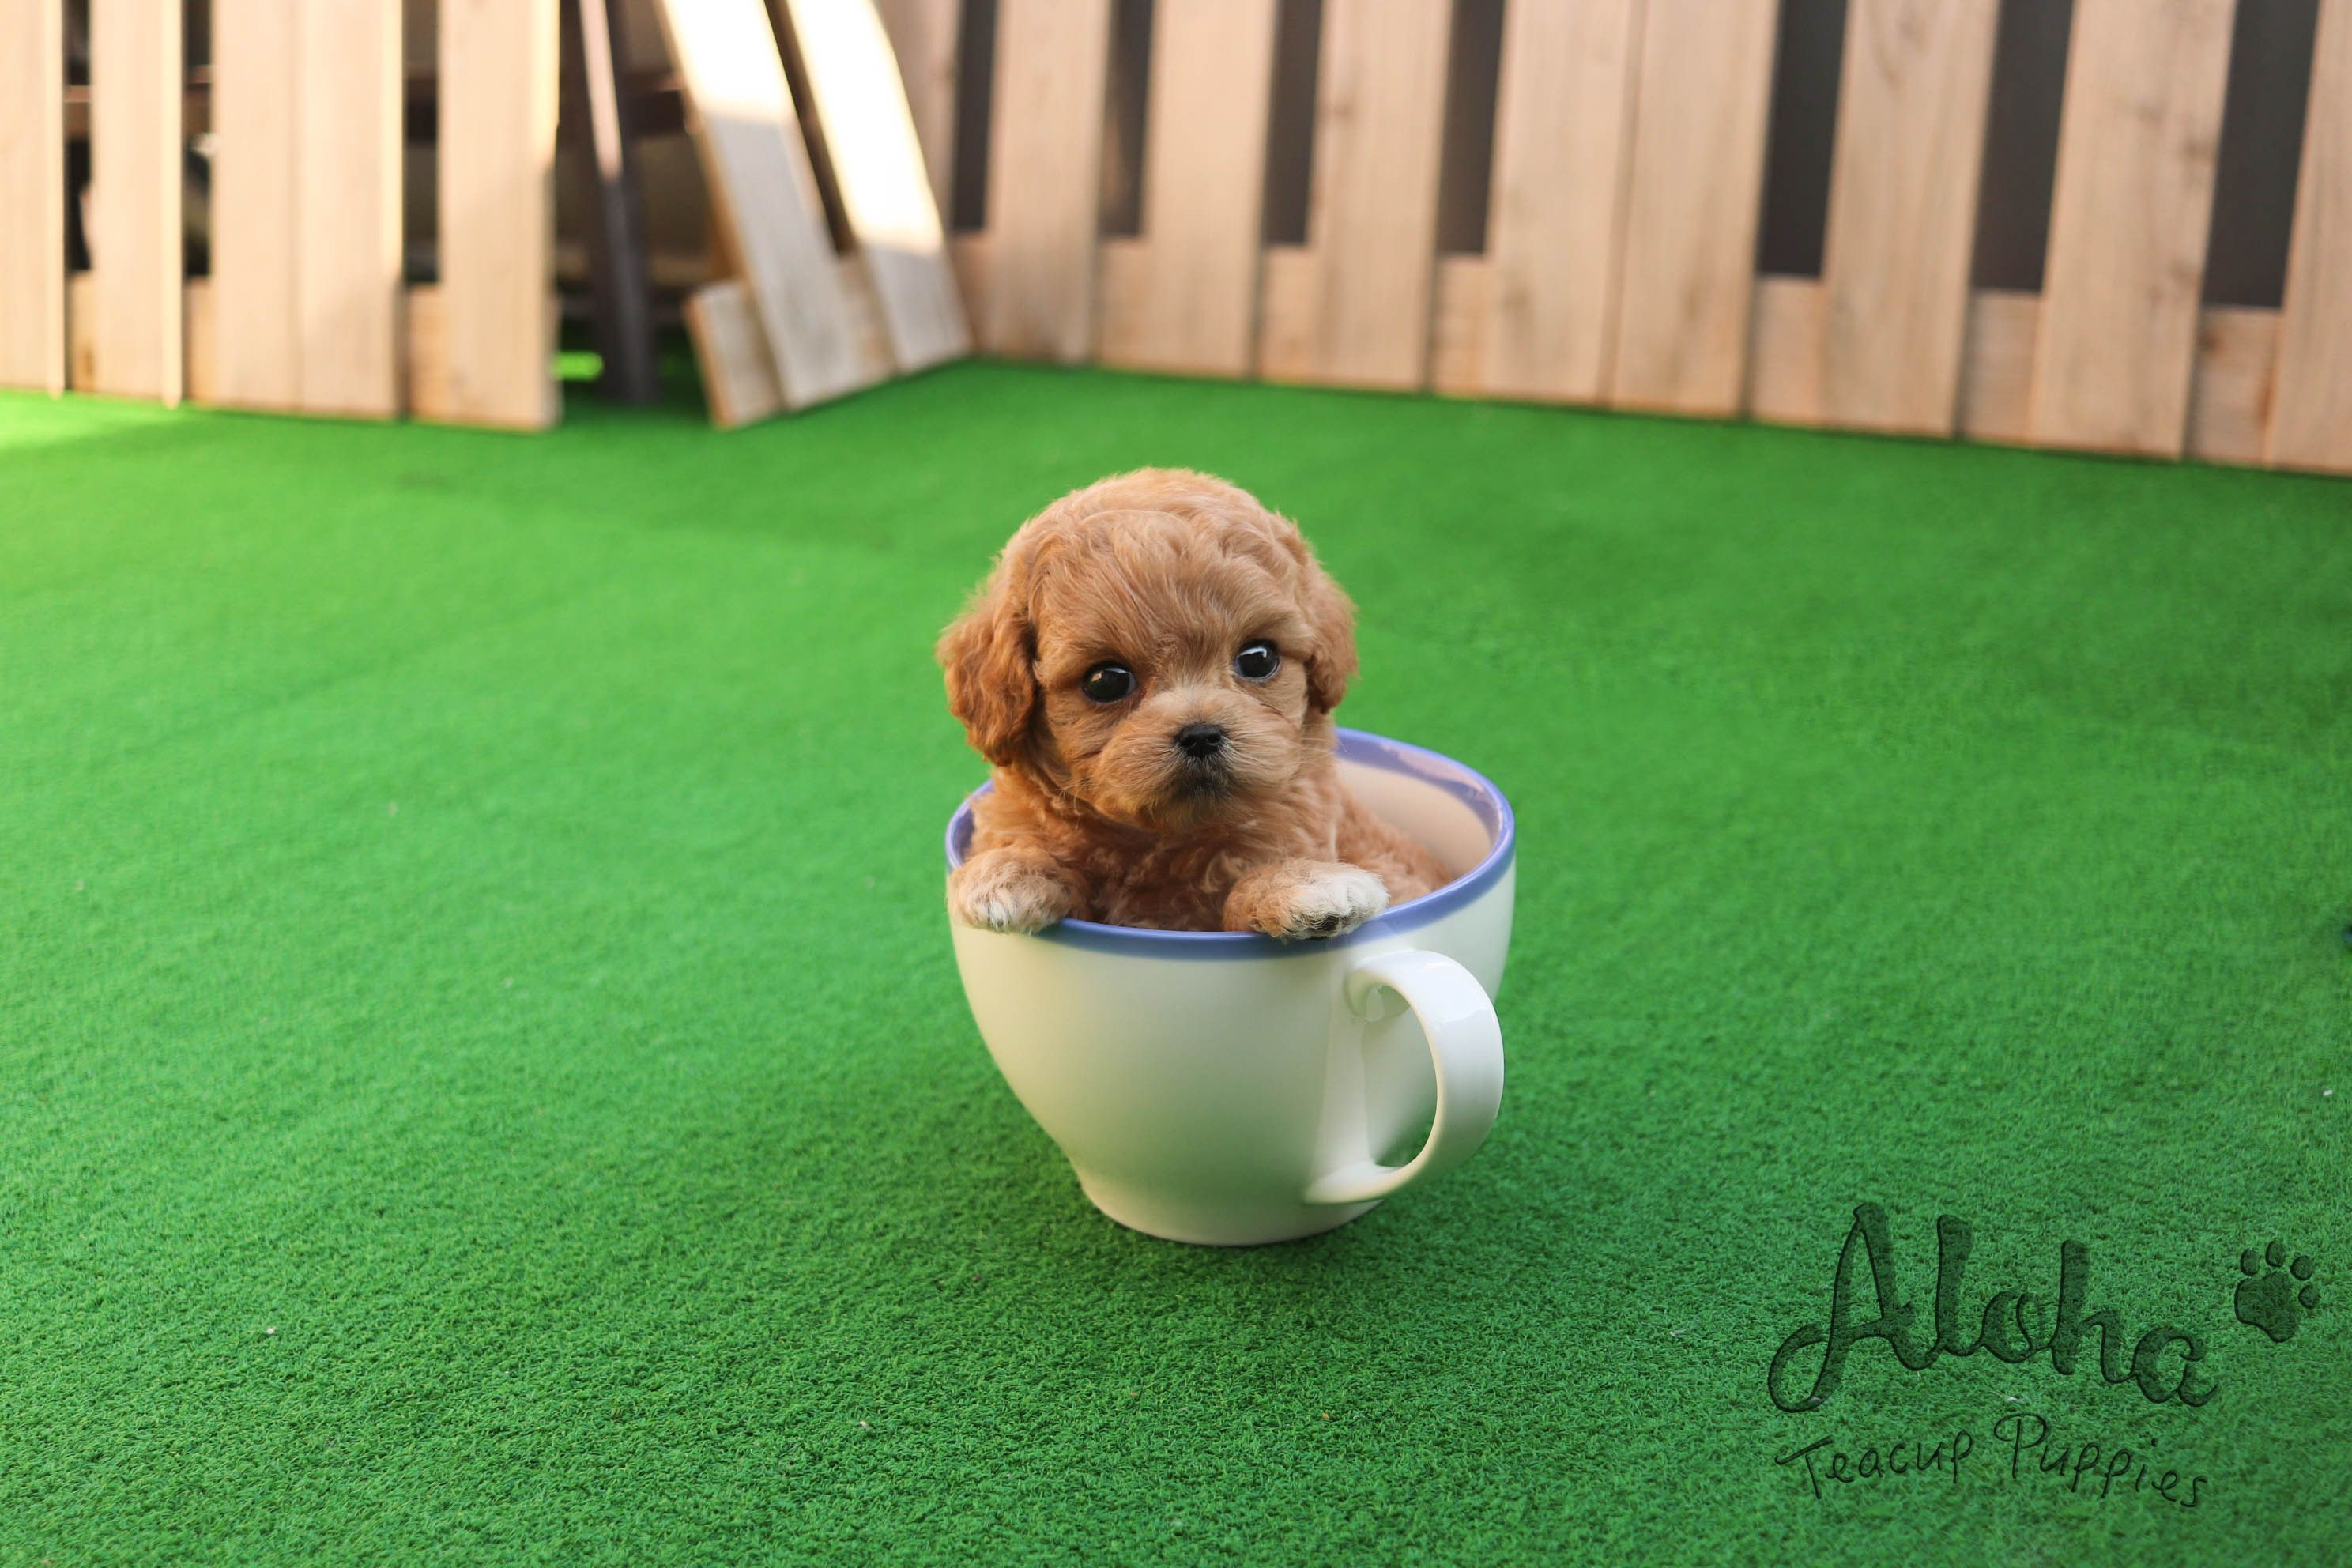 Maltipoo in the cup